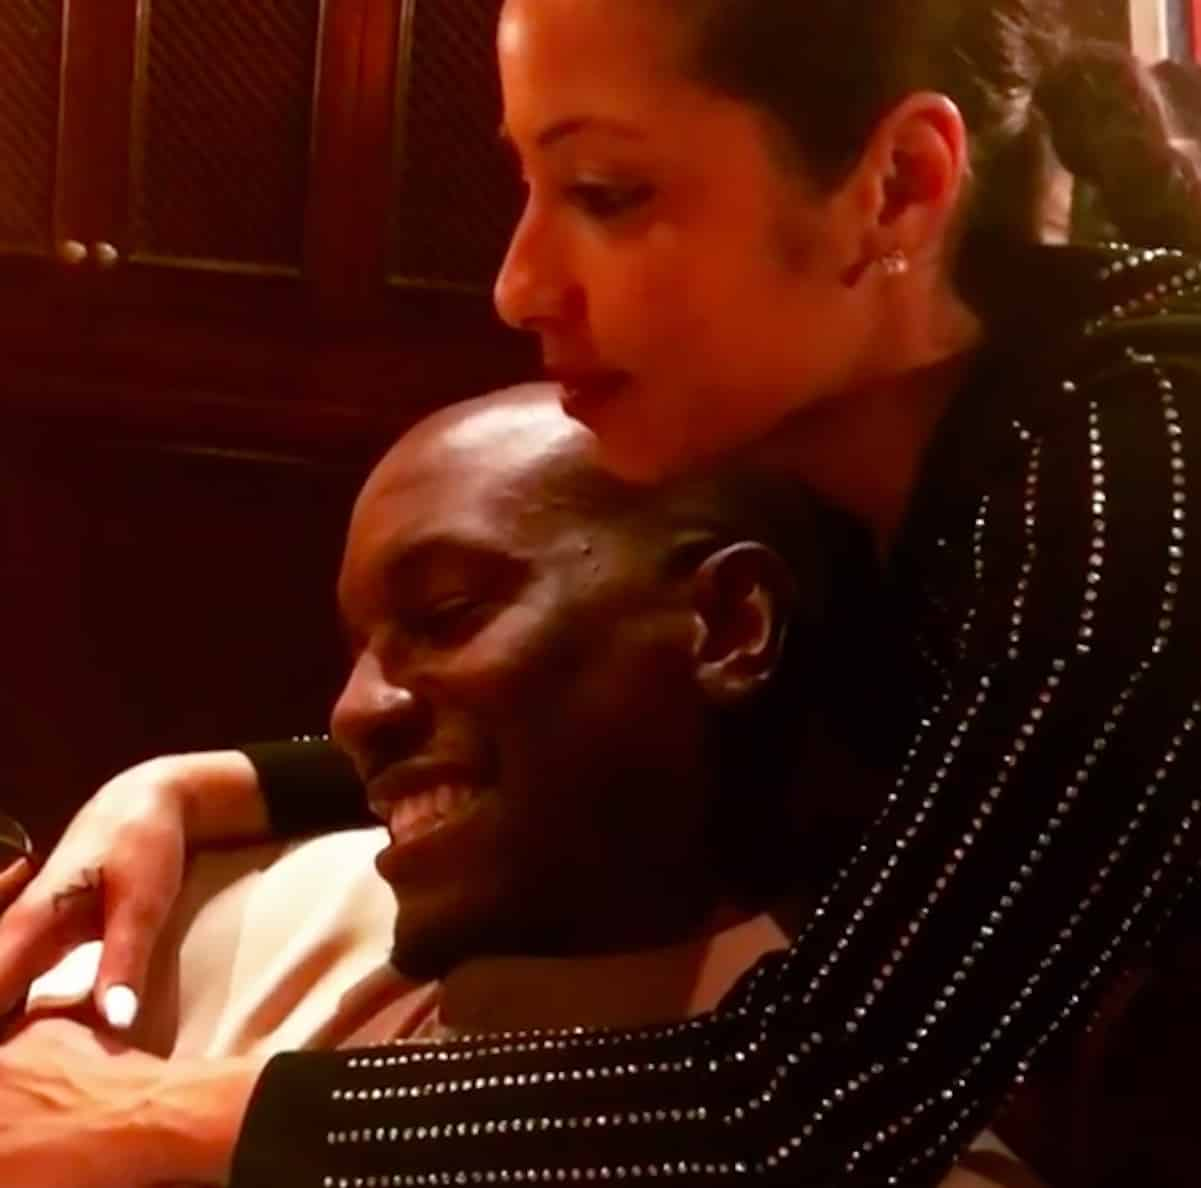 tyrese and sasha relationship trust